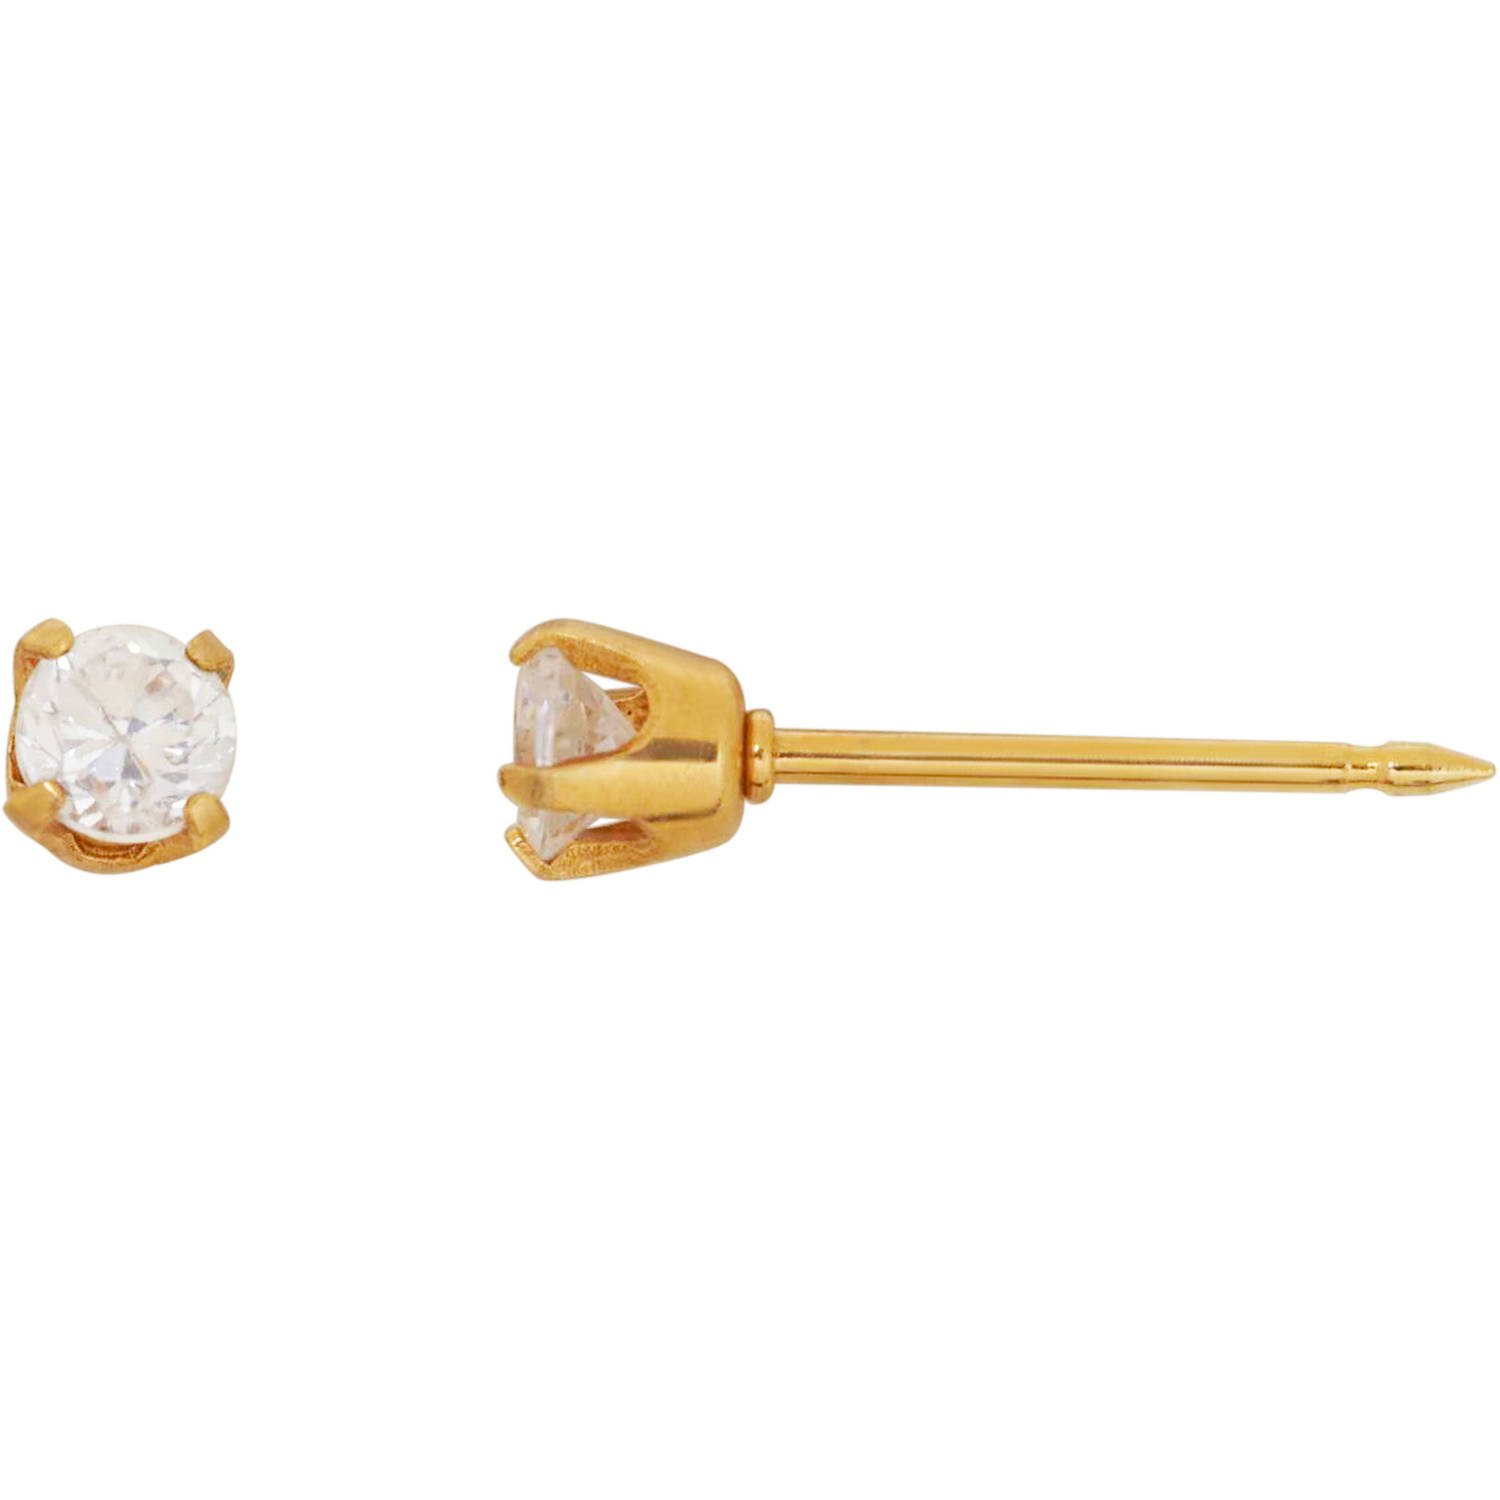 Inverness Corporation Home Ear Piercing Kit With 24kt Gold Plated